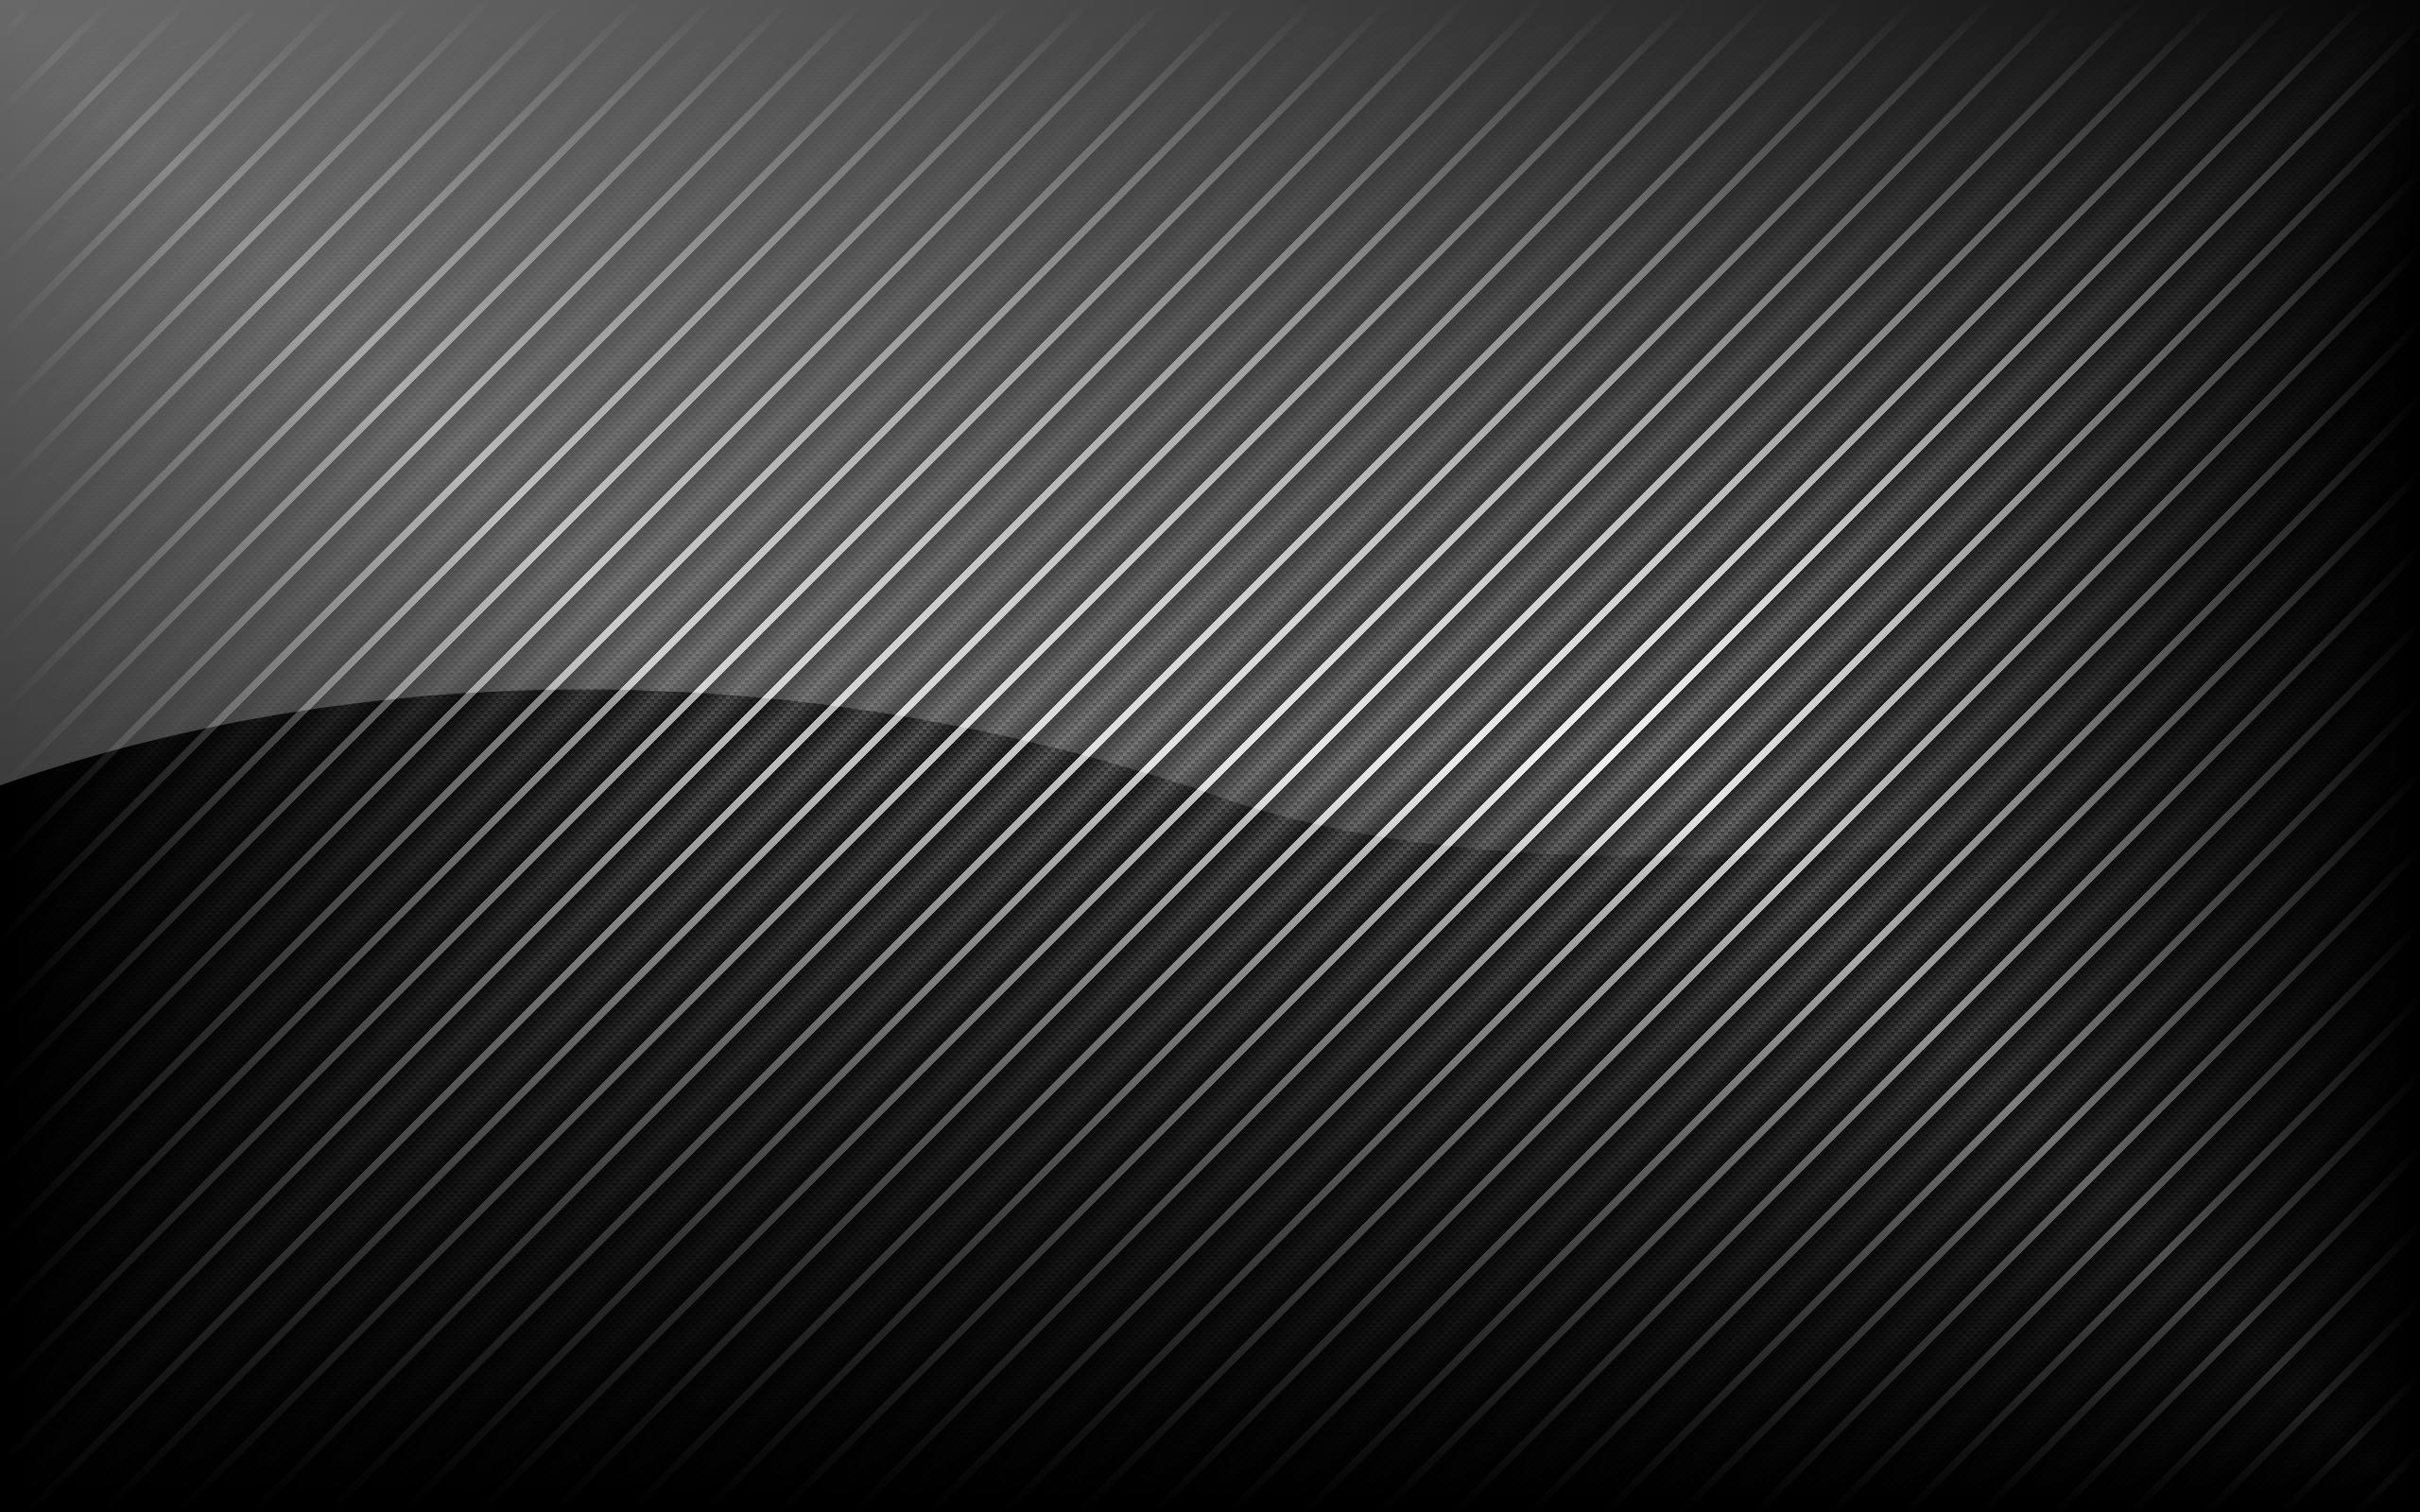 Download desktop carbon fiber backgrounds.